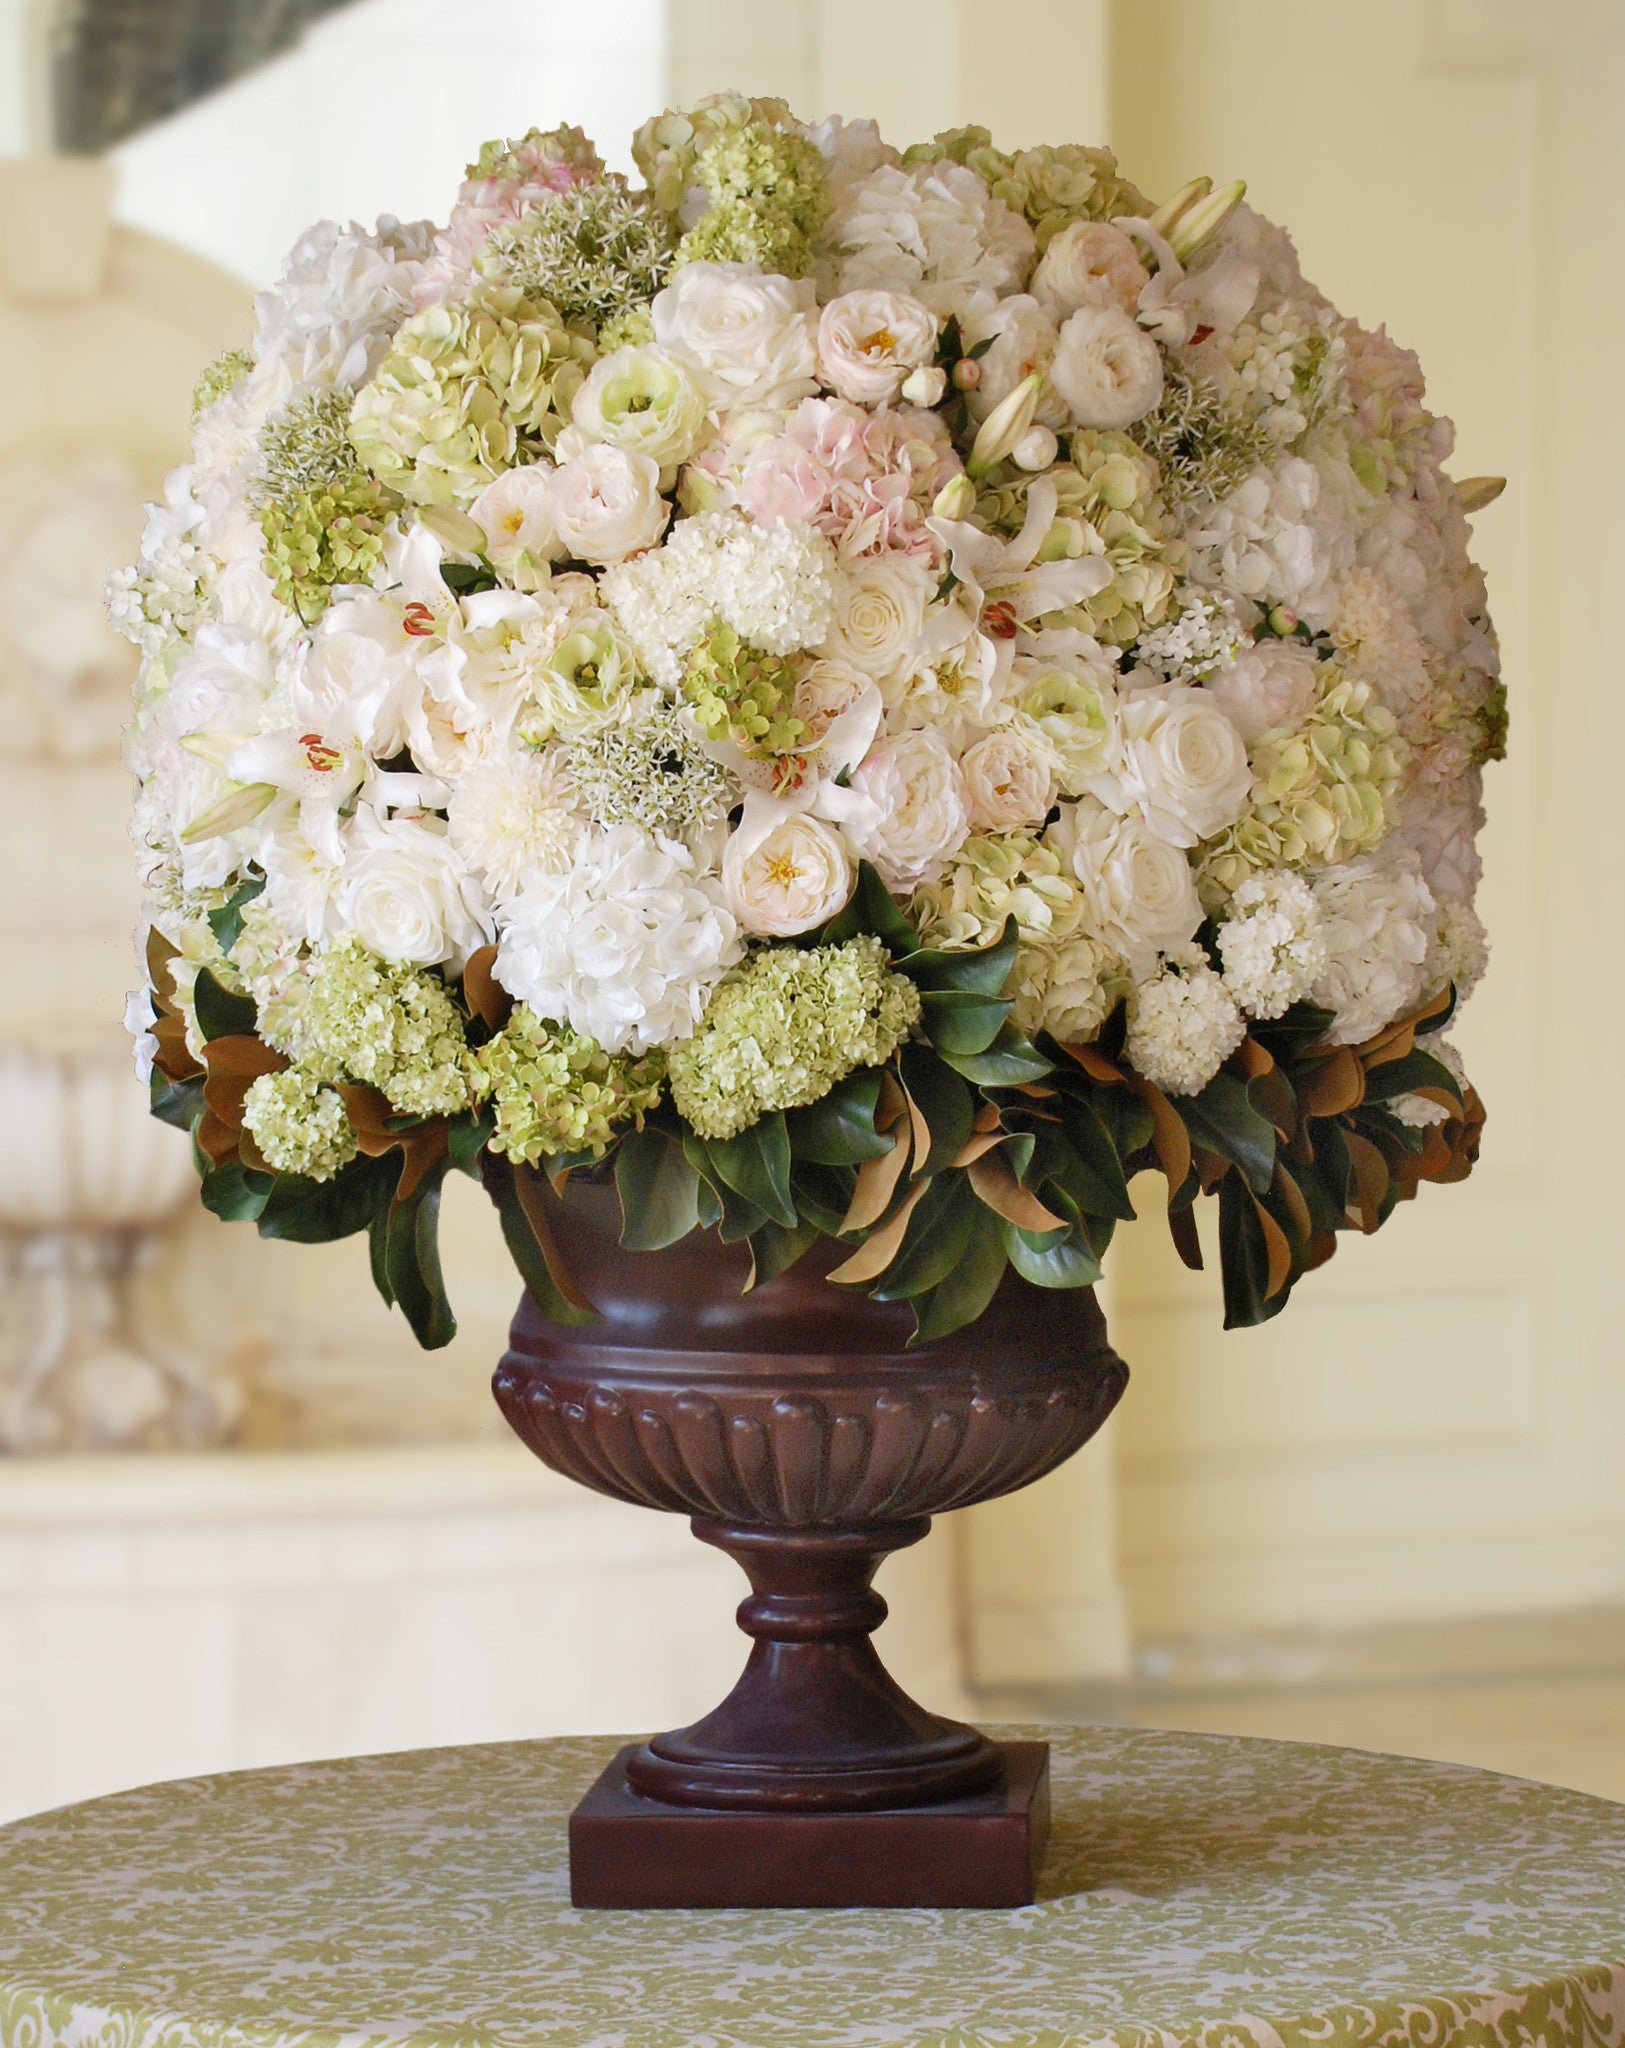 WHITE SNOW CONE IN PALLADIN URN (WHICON07-WHGR) - Winward Home faux floral arrangements